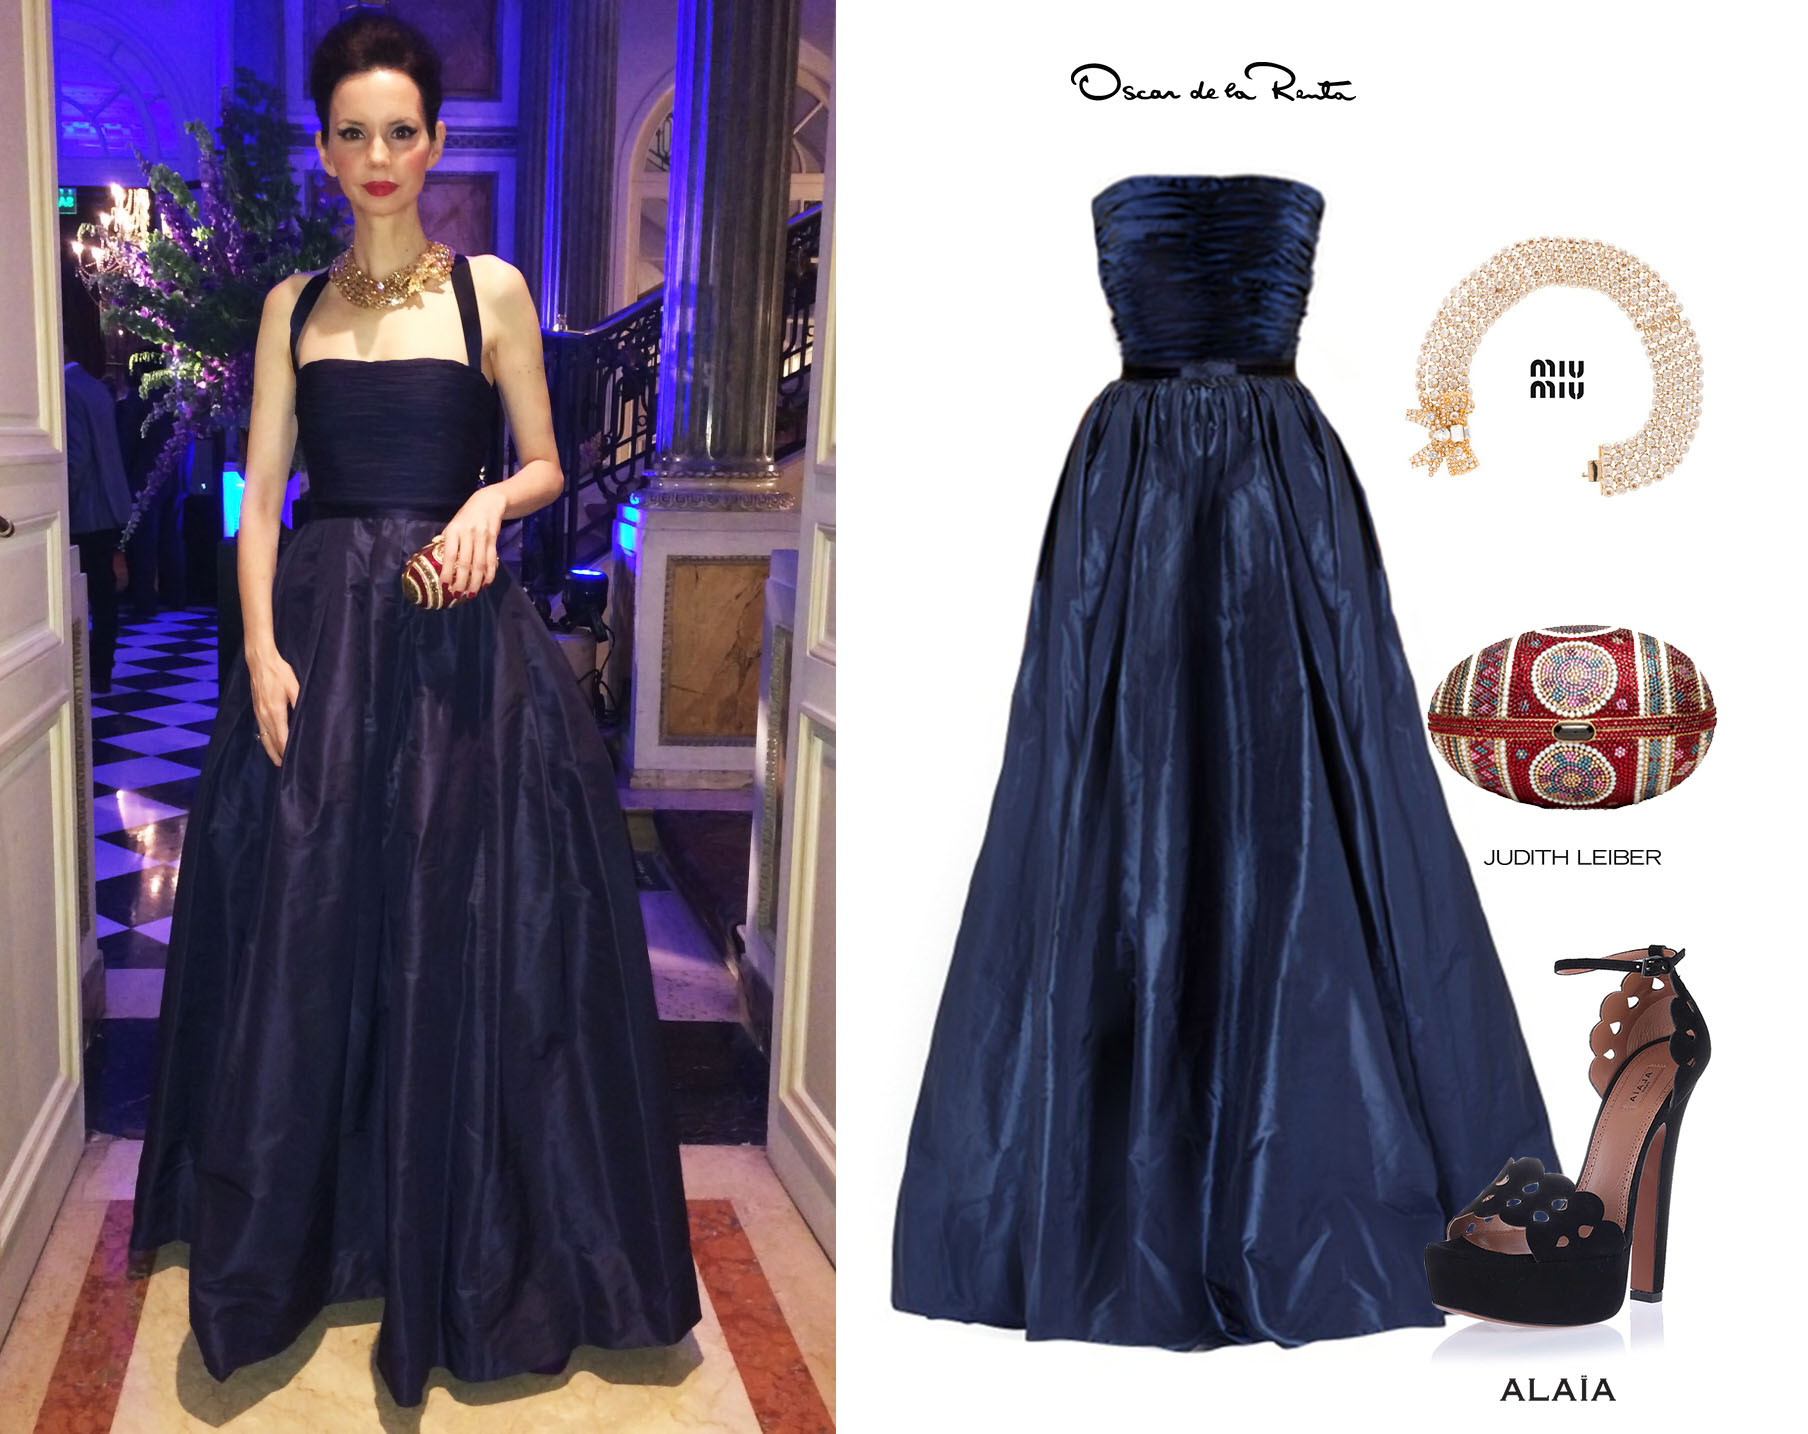 Marina-Achaval-Hola-Argentina-Fiesta-5-Anyos-Vestido-Blue-Dark-Dress-Oscar-de-La-Renta-Savanah-Alaia-Platform-Sandals-Judith-Leiber-Egg-Clutch-Miu-Miu-Ribbon-Gold-Crystal-Necklace.jpg